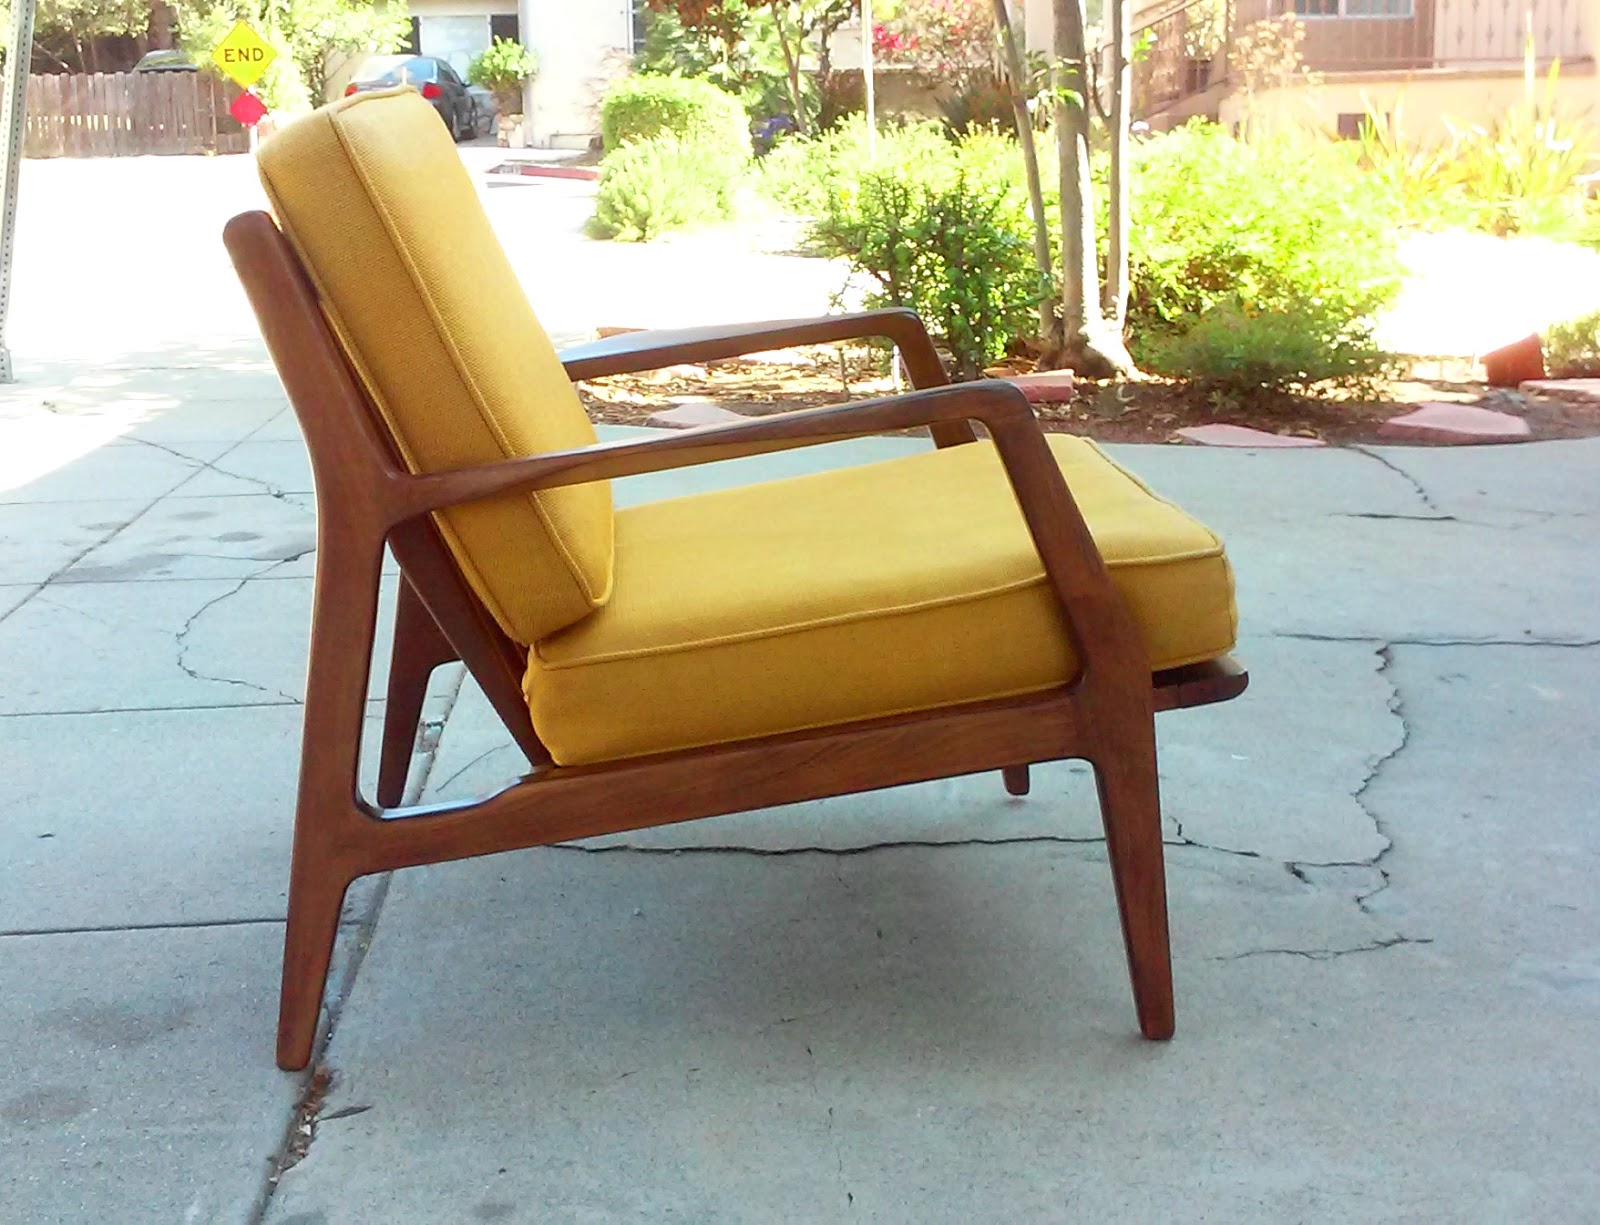 Vintage Danish Mid Century Lounge Chair By Designer Ib Kofod Larsen Made In  Denmark Newer Seat Straps, Original Mustard Tweed Fabric With Zippers.